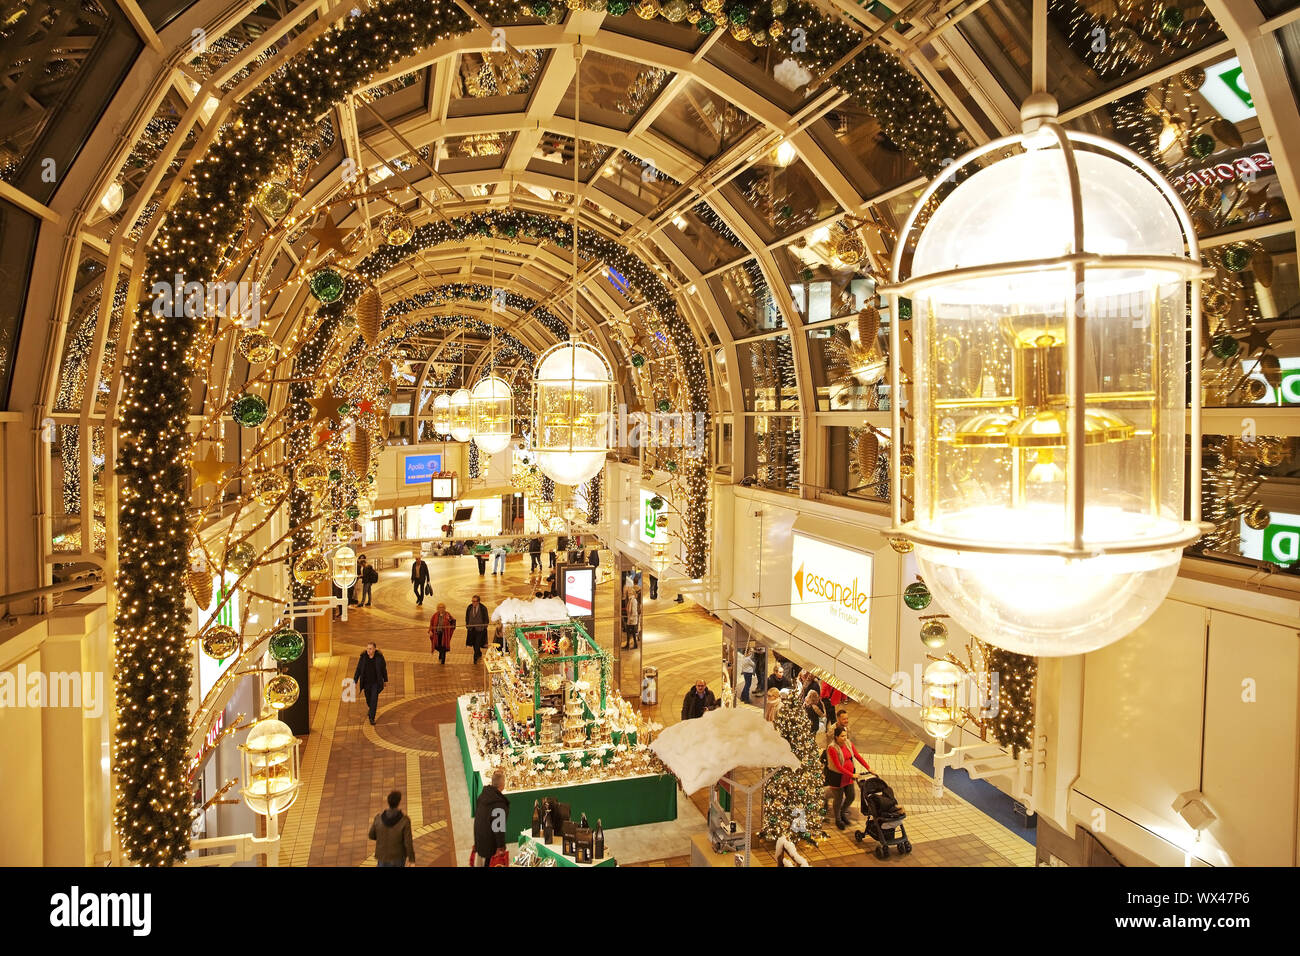 Christmas decoration in the shopping centre Allee Center, Alt-Remscheid, Remscheid, Germany, Europe Stock Photo